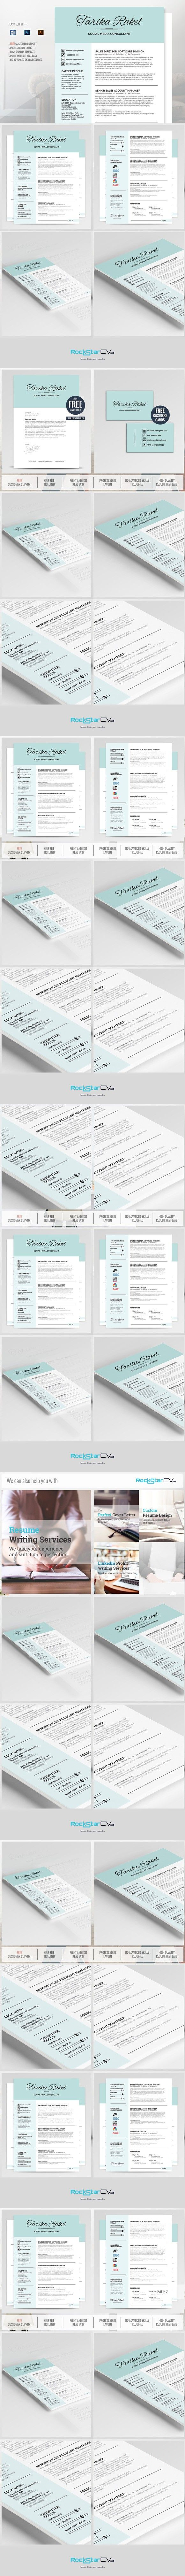 free cover letters for resume best 20 free cover letter ideas on pinterest resume template free cover letter - Resume Builder Examples